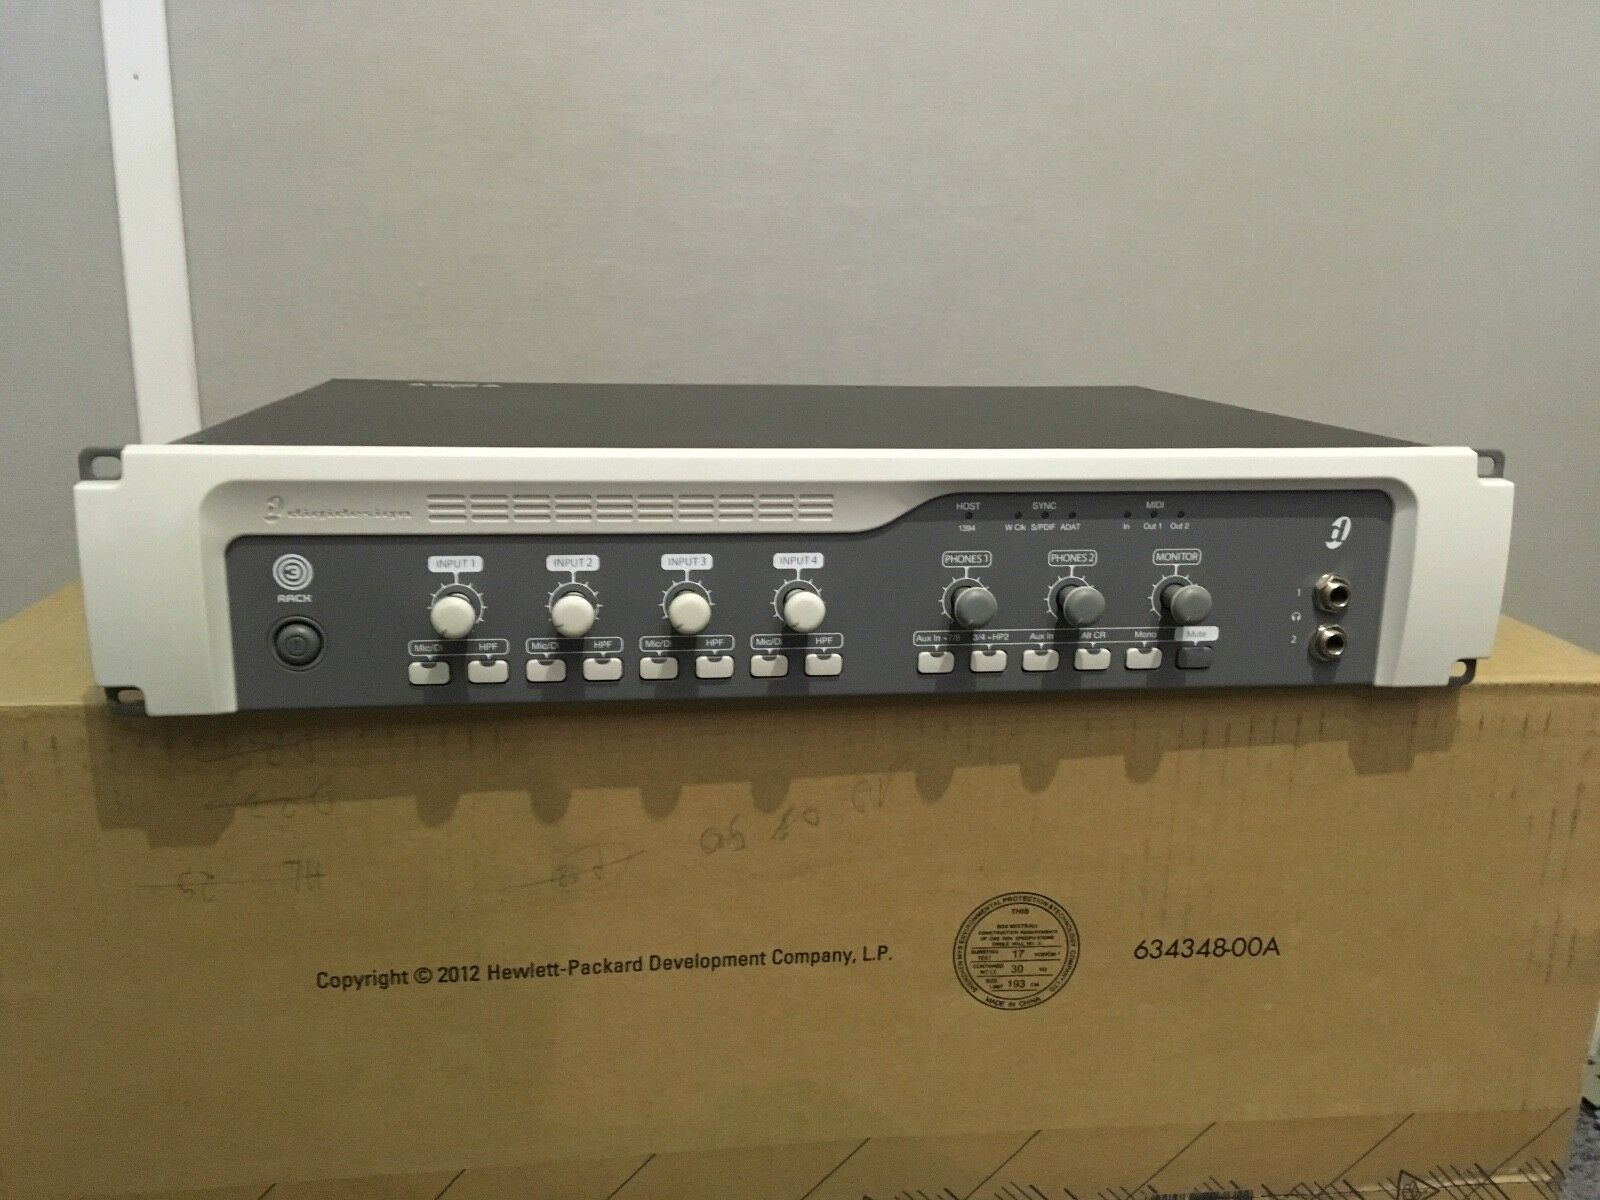 Digidesign 003, Pro Sound Card.